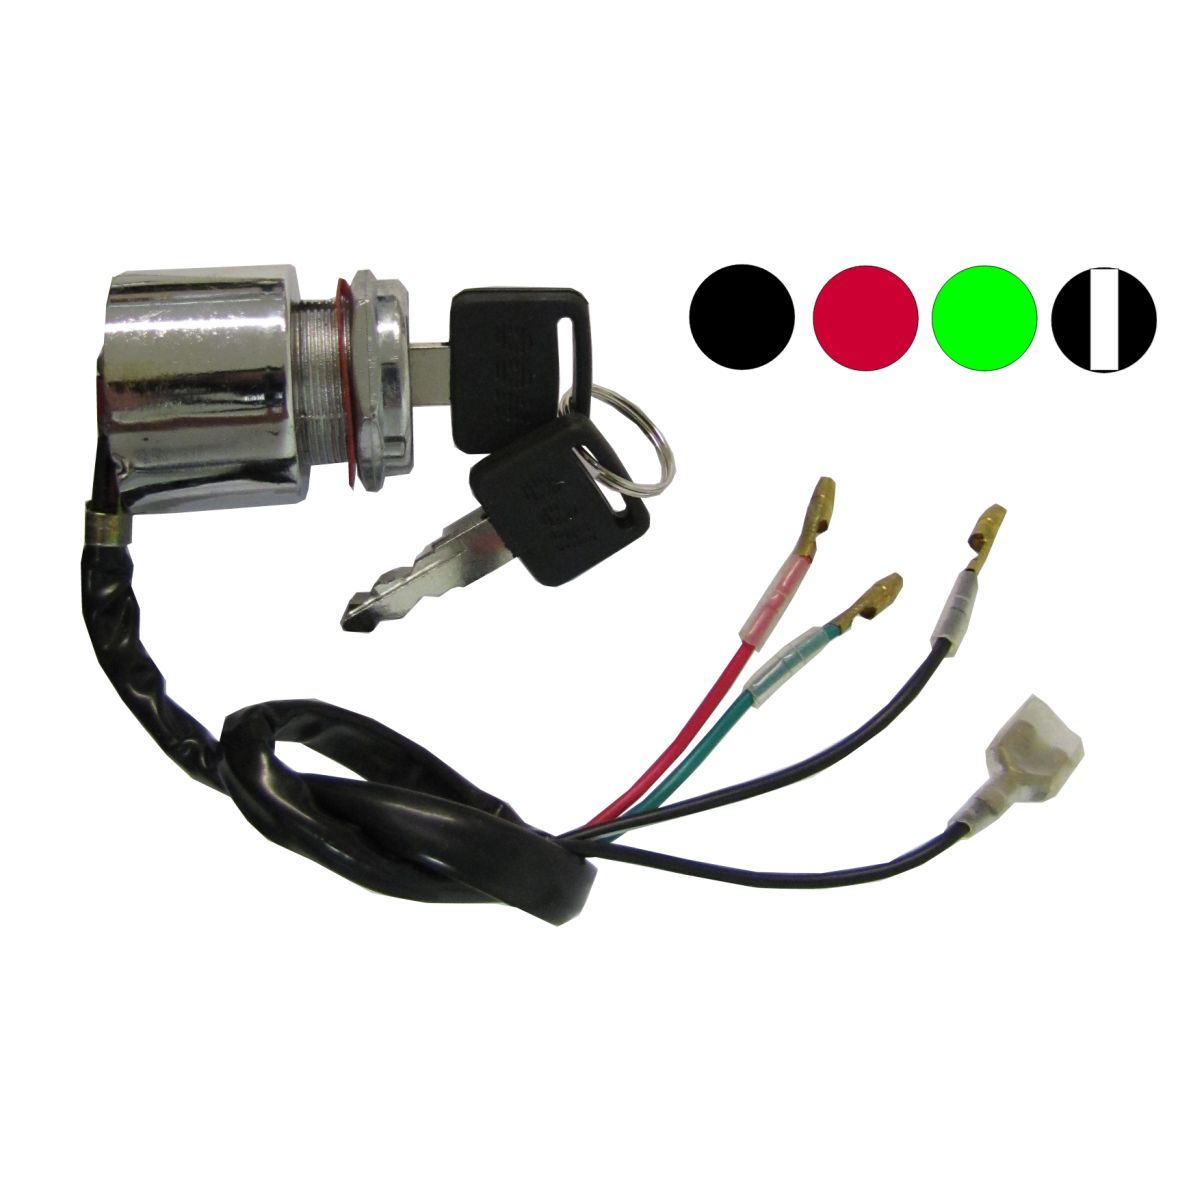 Aw Motorcycle Parts  Ignition Switch Universal 4 Wire Held